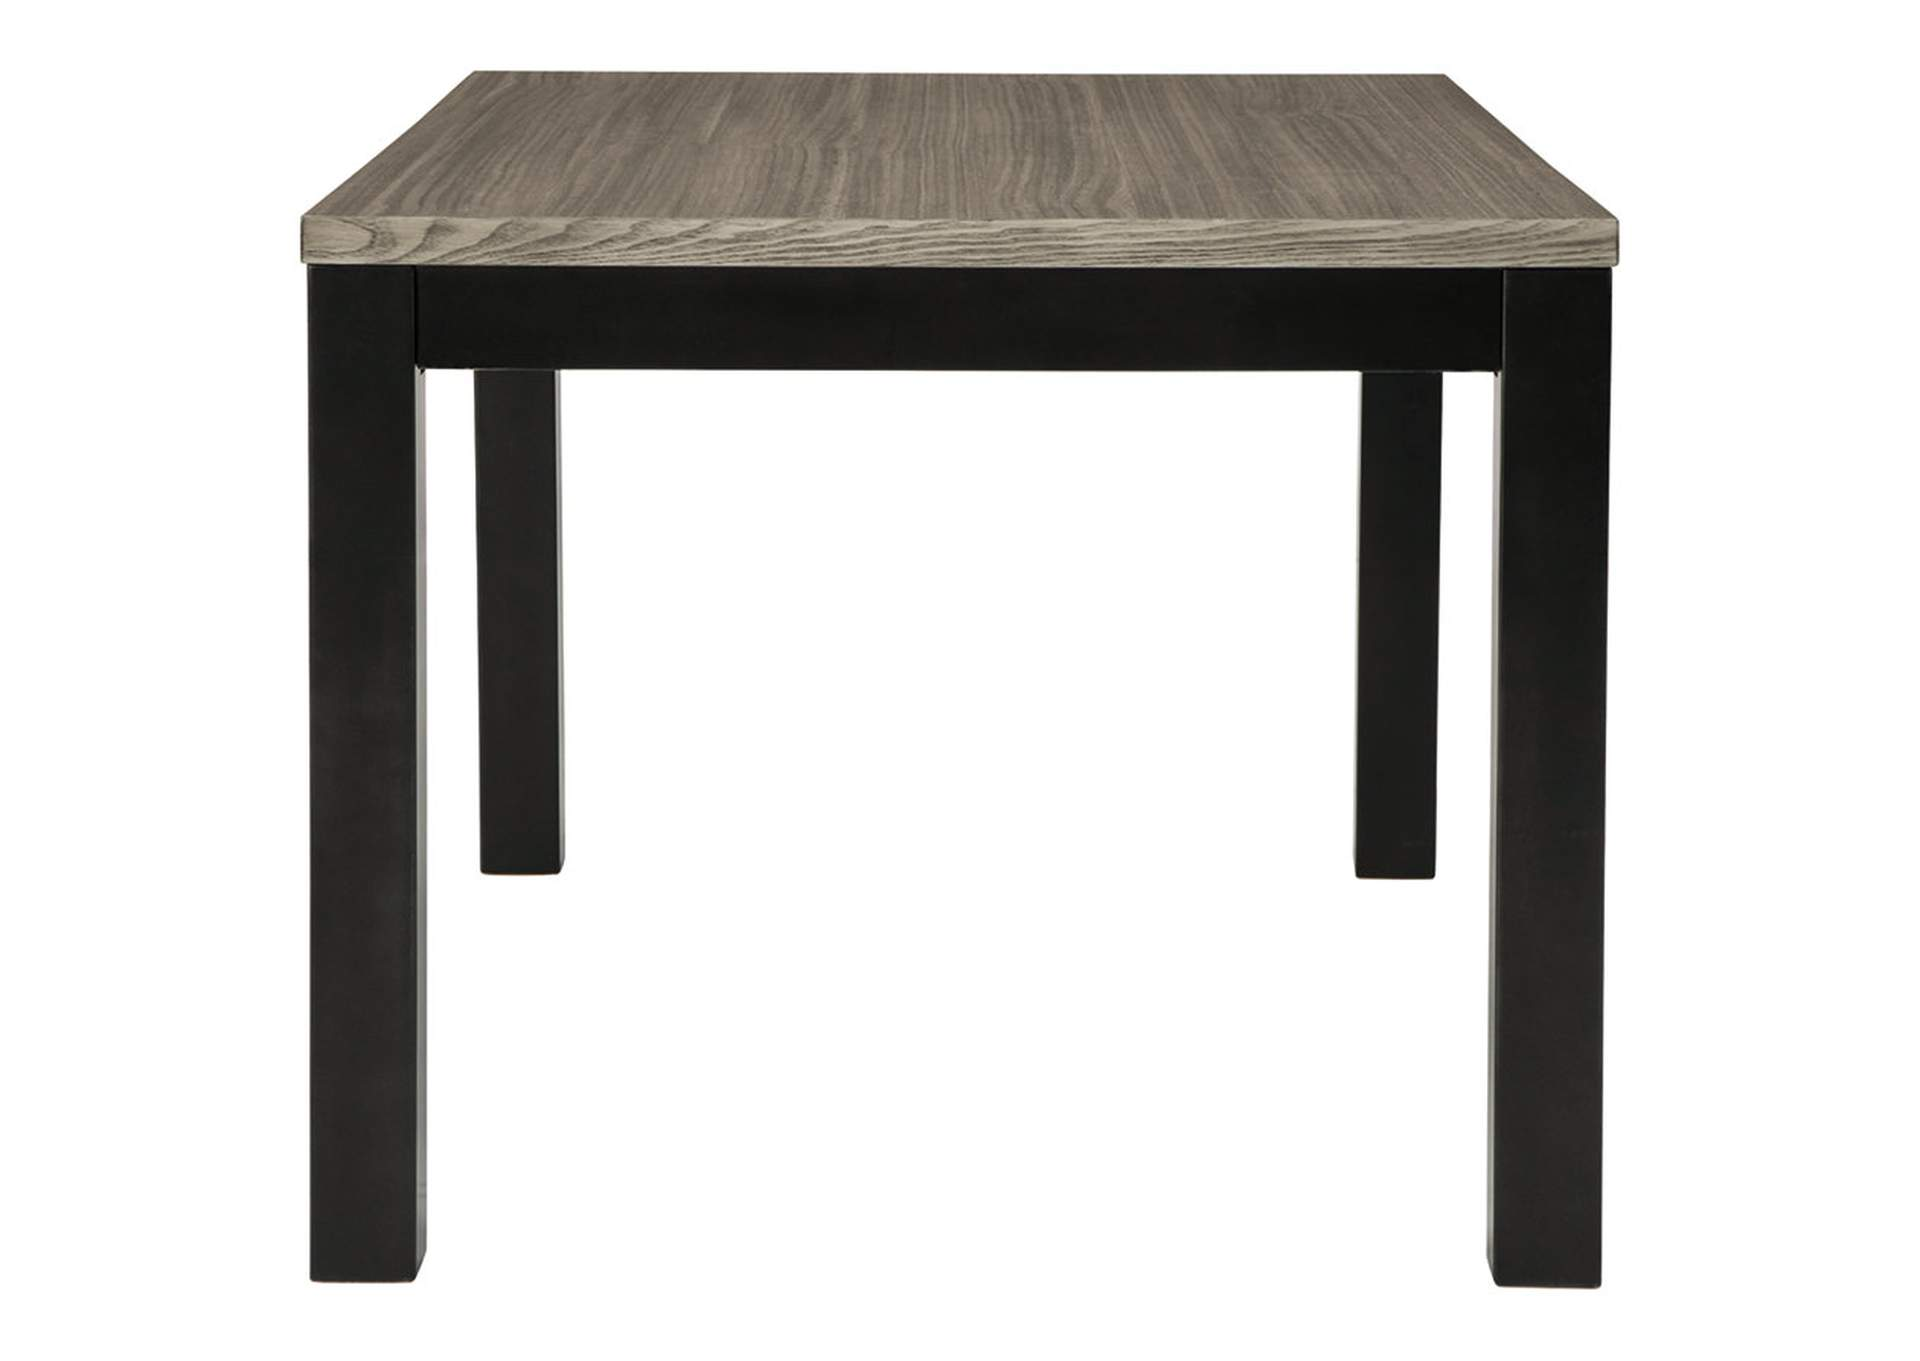 Dontally Dining Room Table,Benchcraft